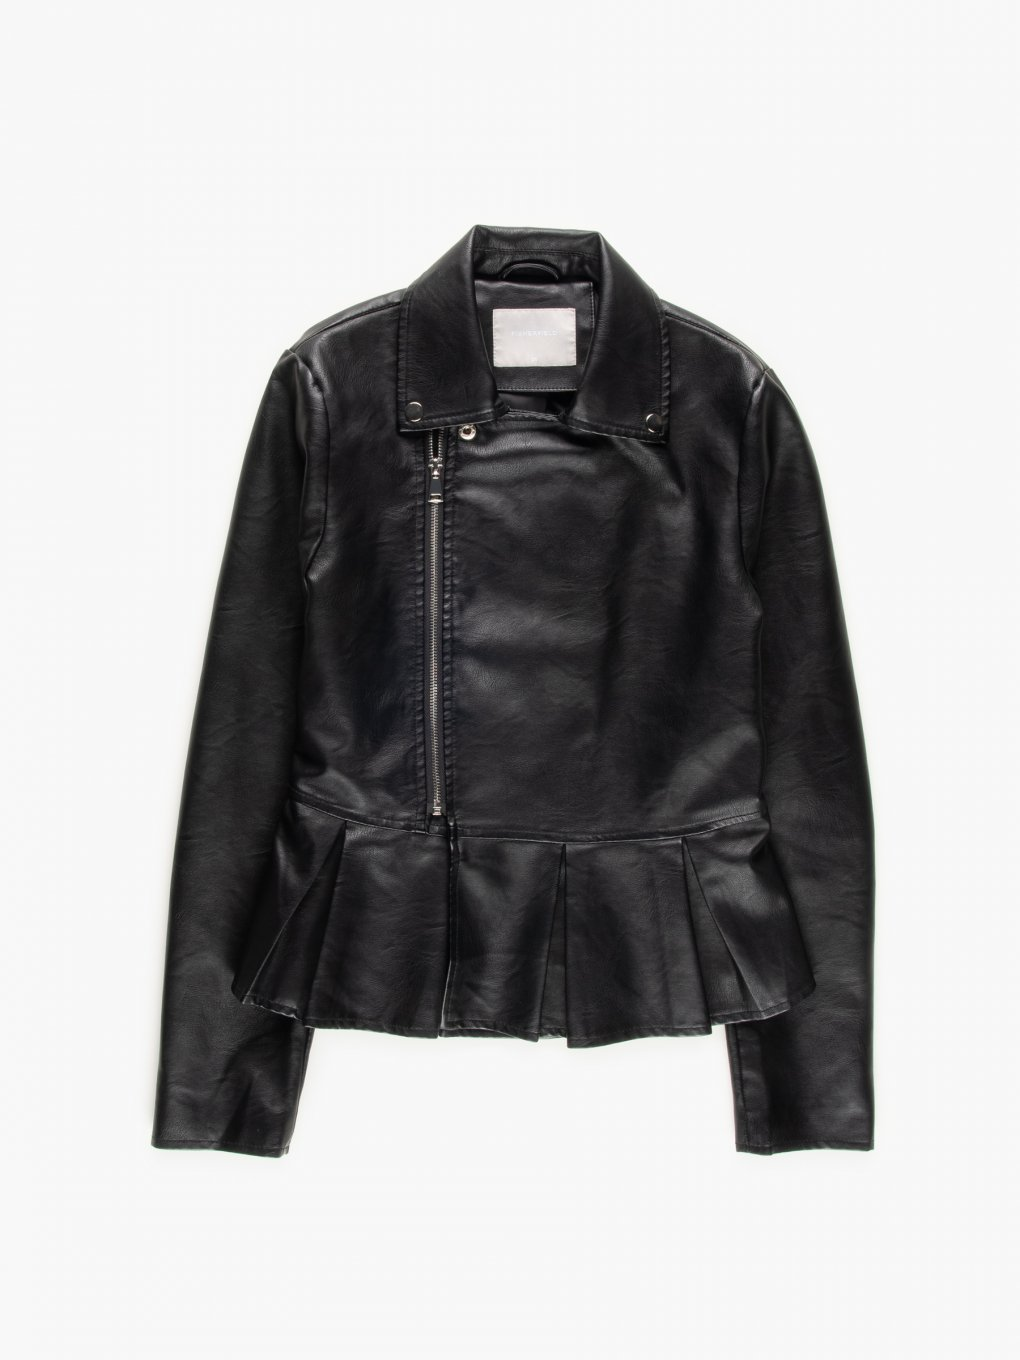 Biker jacket with ruffle